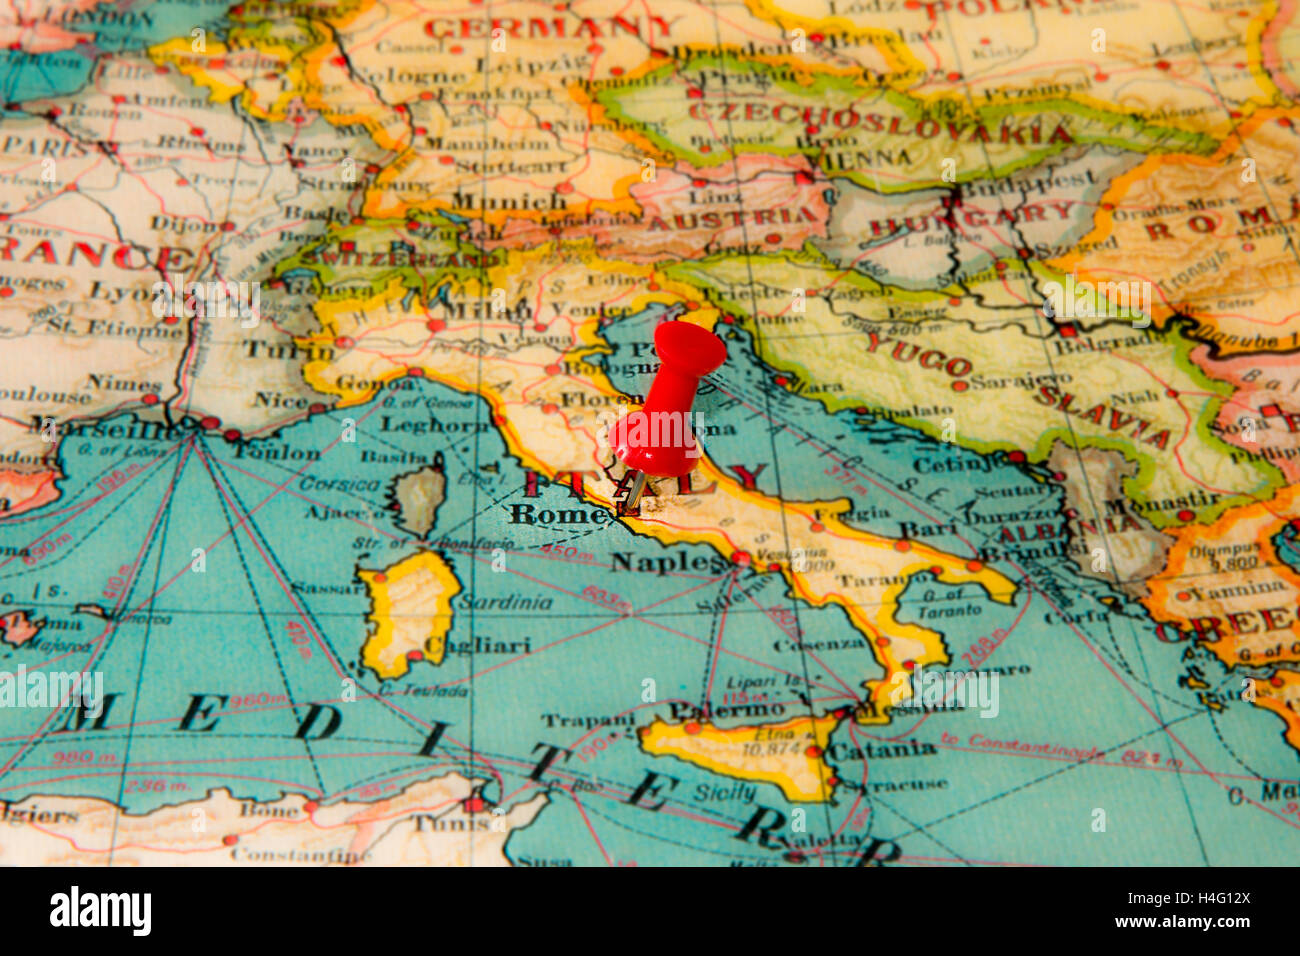 Italy On Map Of Europe.Rome Italy Pinned On Vintage Map Of Europe Stock Photo